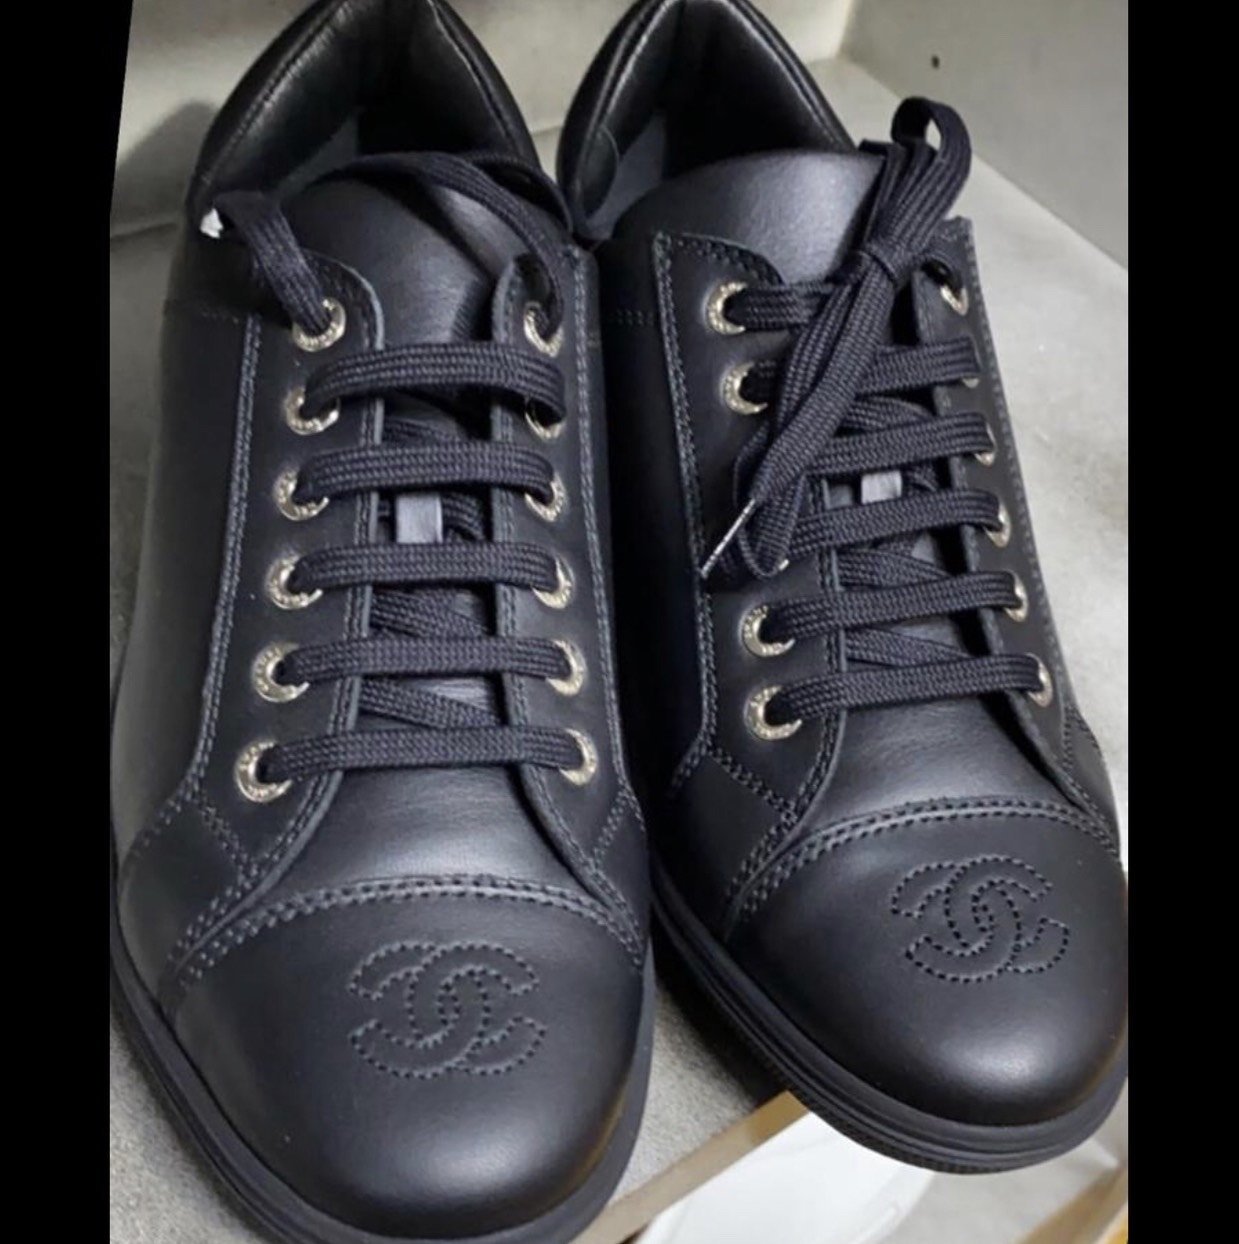 Sneakers Chanel. New Chanel1